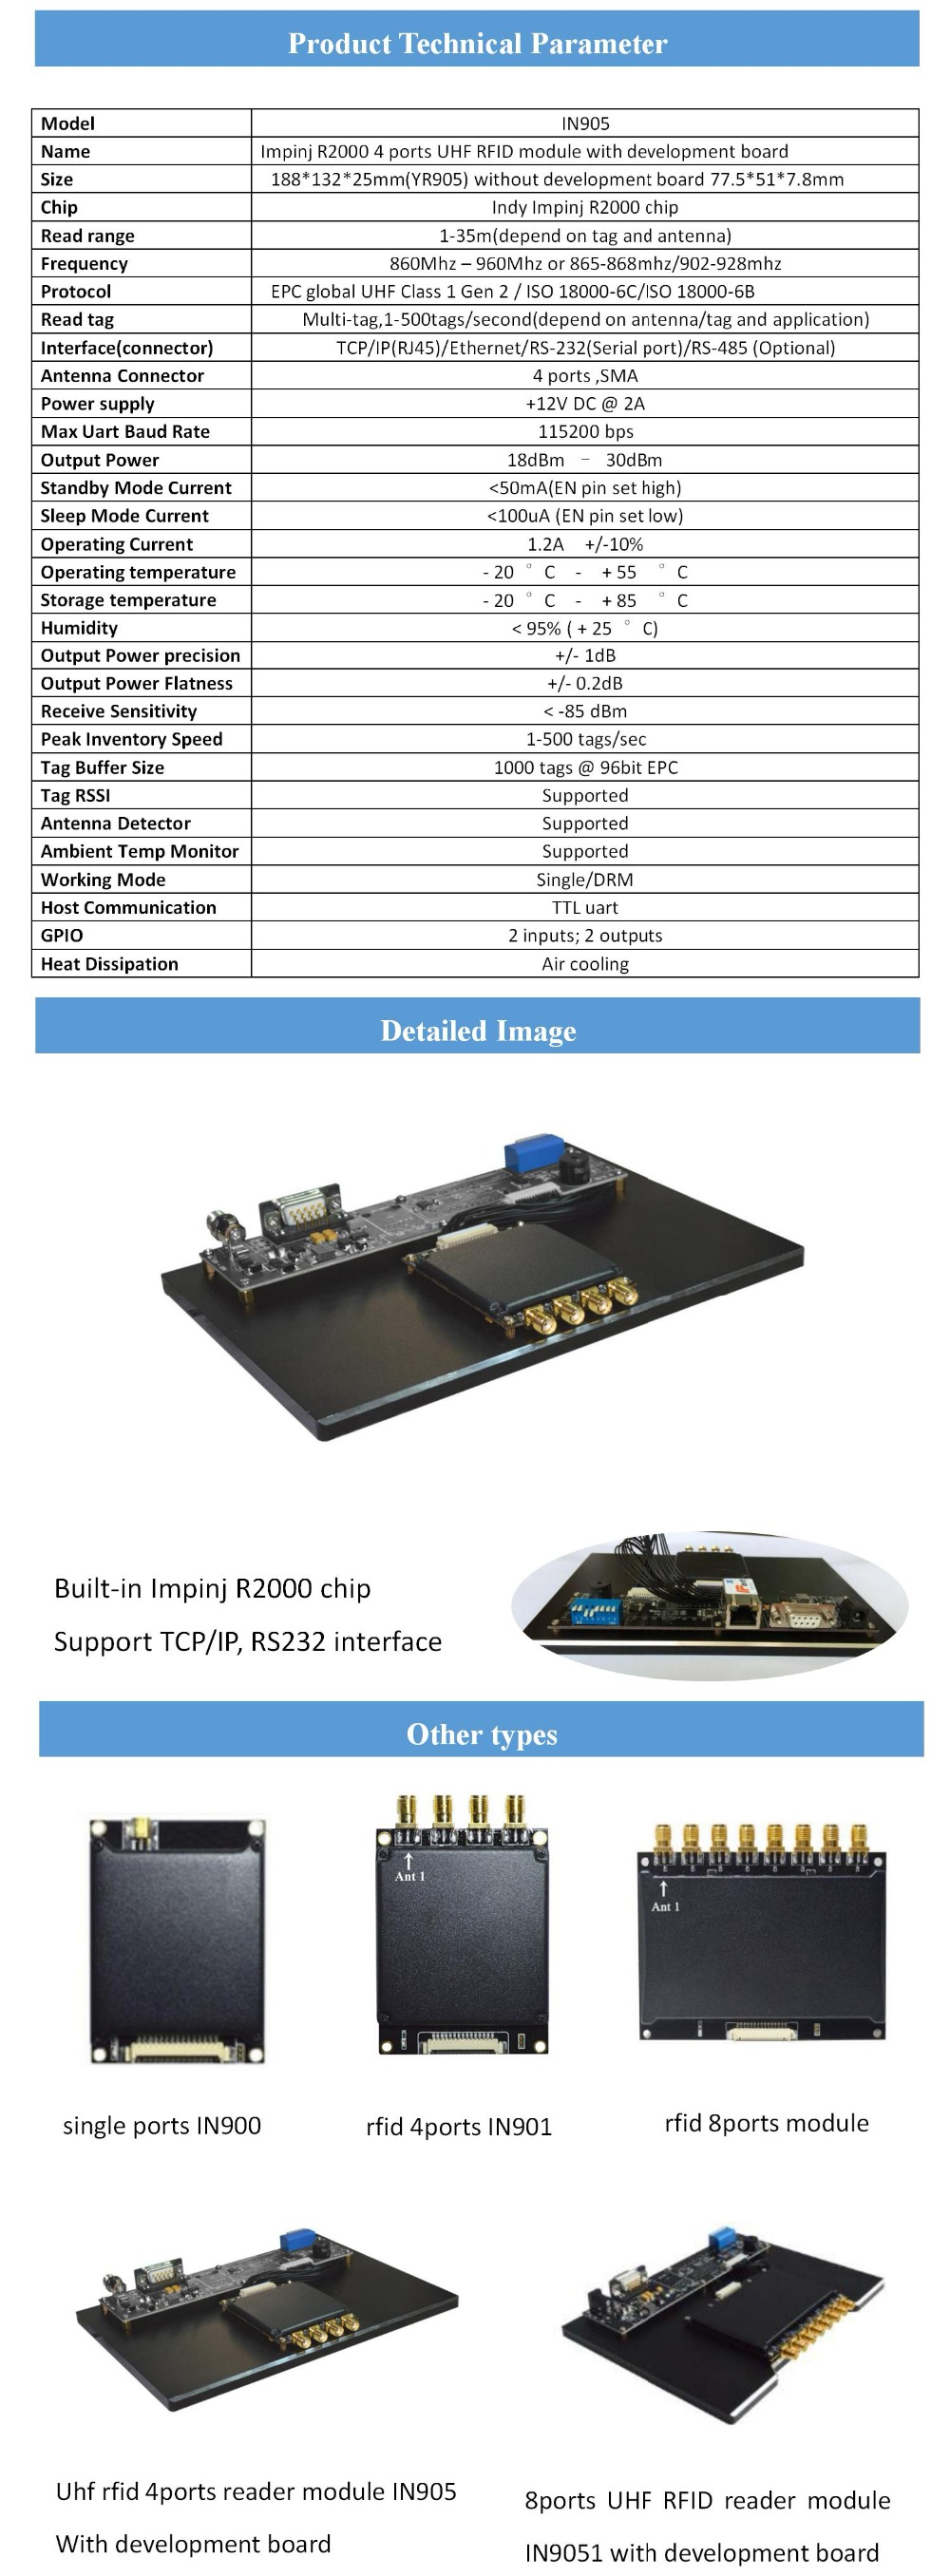 Control Card Readers Impinj Indy R2000 Long Range 4 Ports Uhf Rfid Module 4ports Passive Fixed Rfid Uhf Reader Free Tags Timing System Tcp/ip Rj45